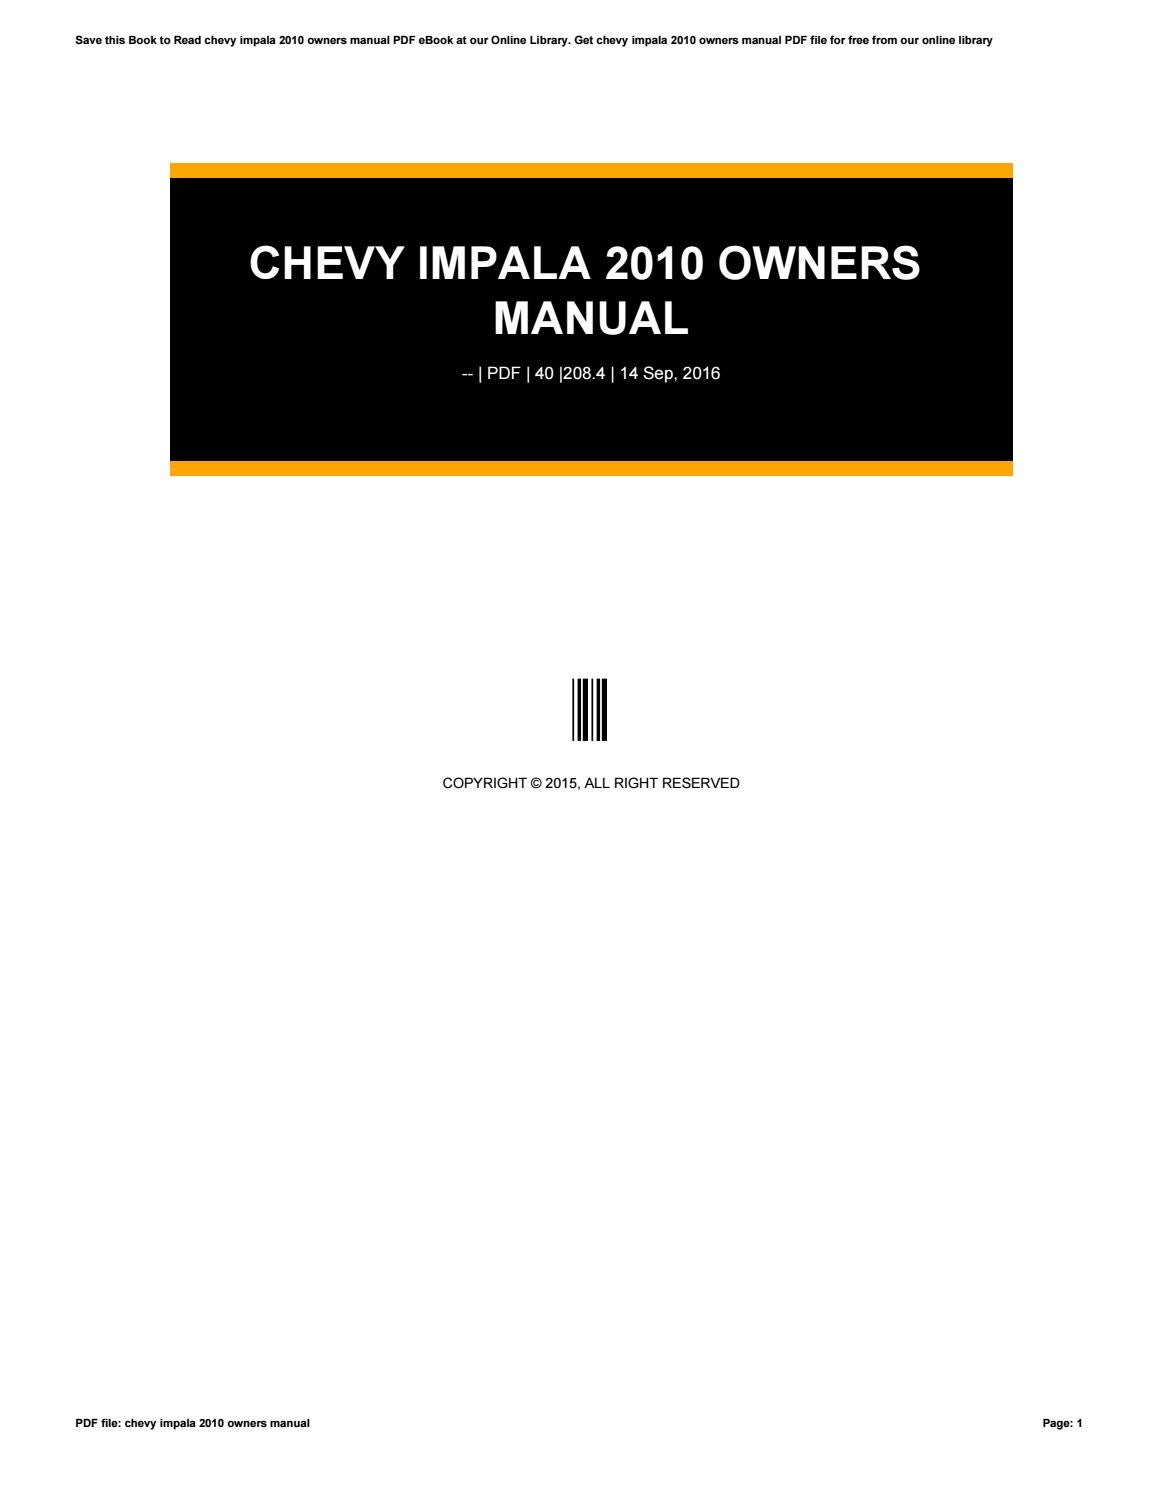 08 chevy impala owners manual